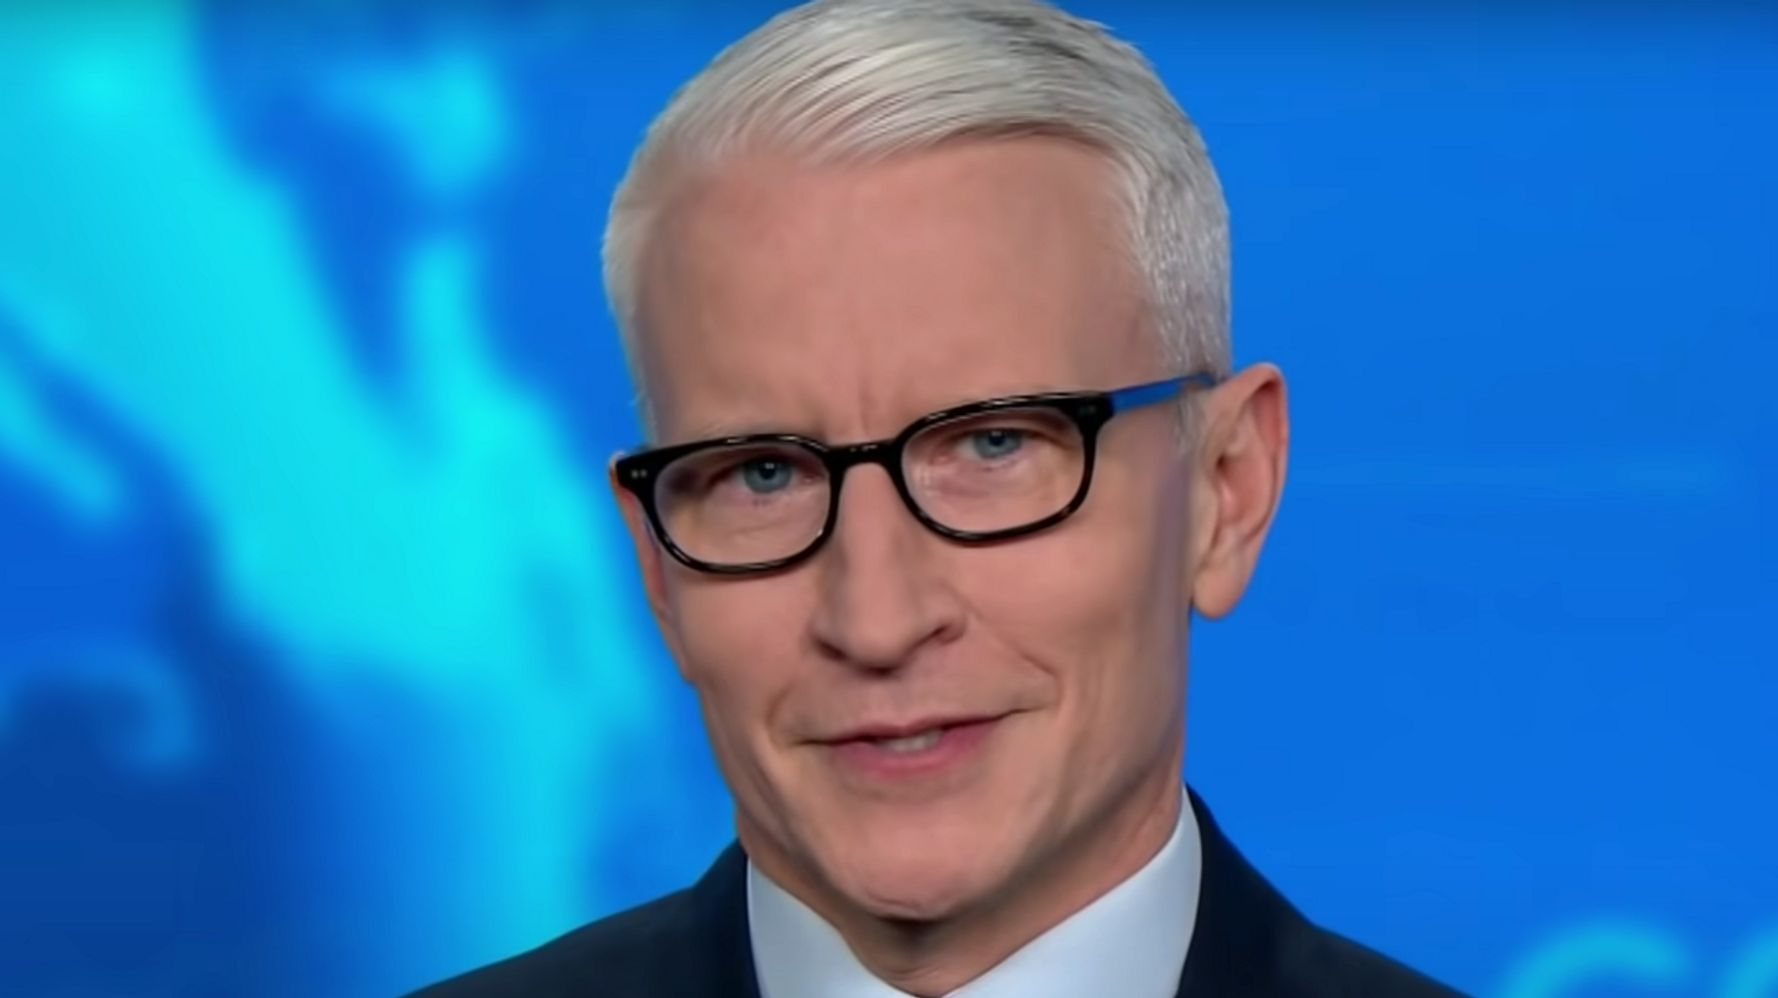 Anderson Cooper Sums Up Donald Trump's Post-Election Chaos With 1 Searing Word